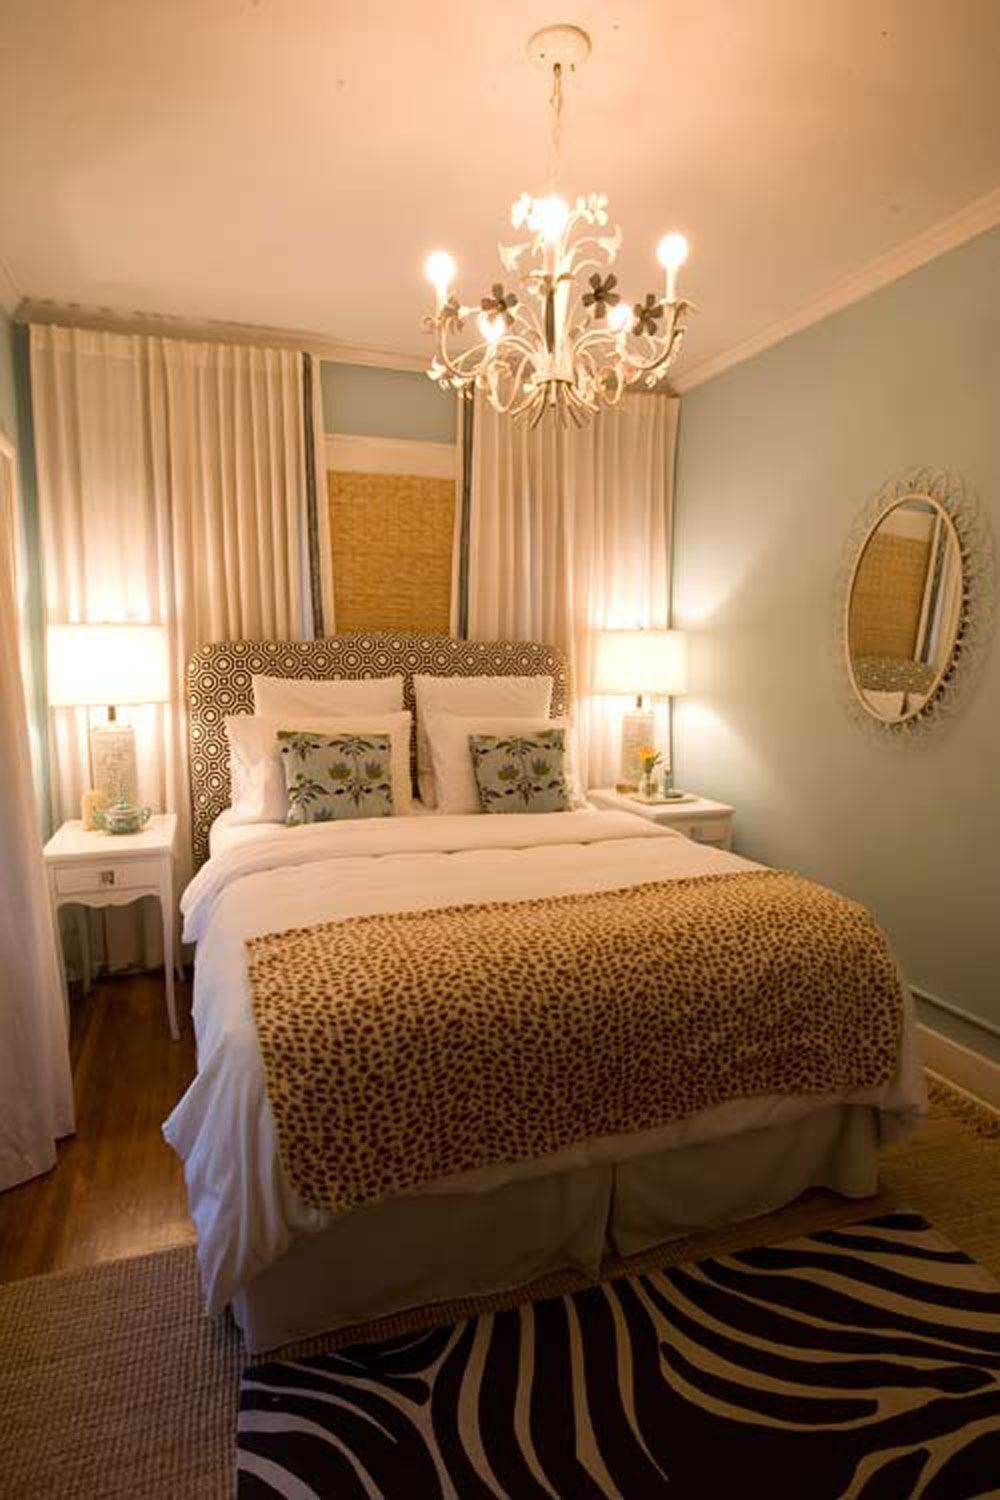 design tips for decorating a small bedroom on a budget - Decorating Ideas For A Small Bedroom